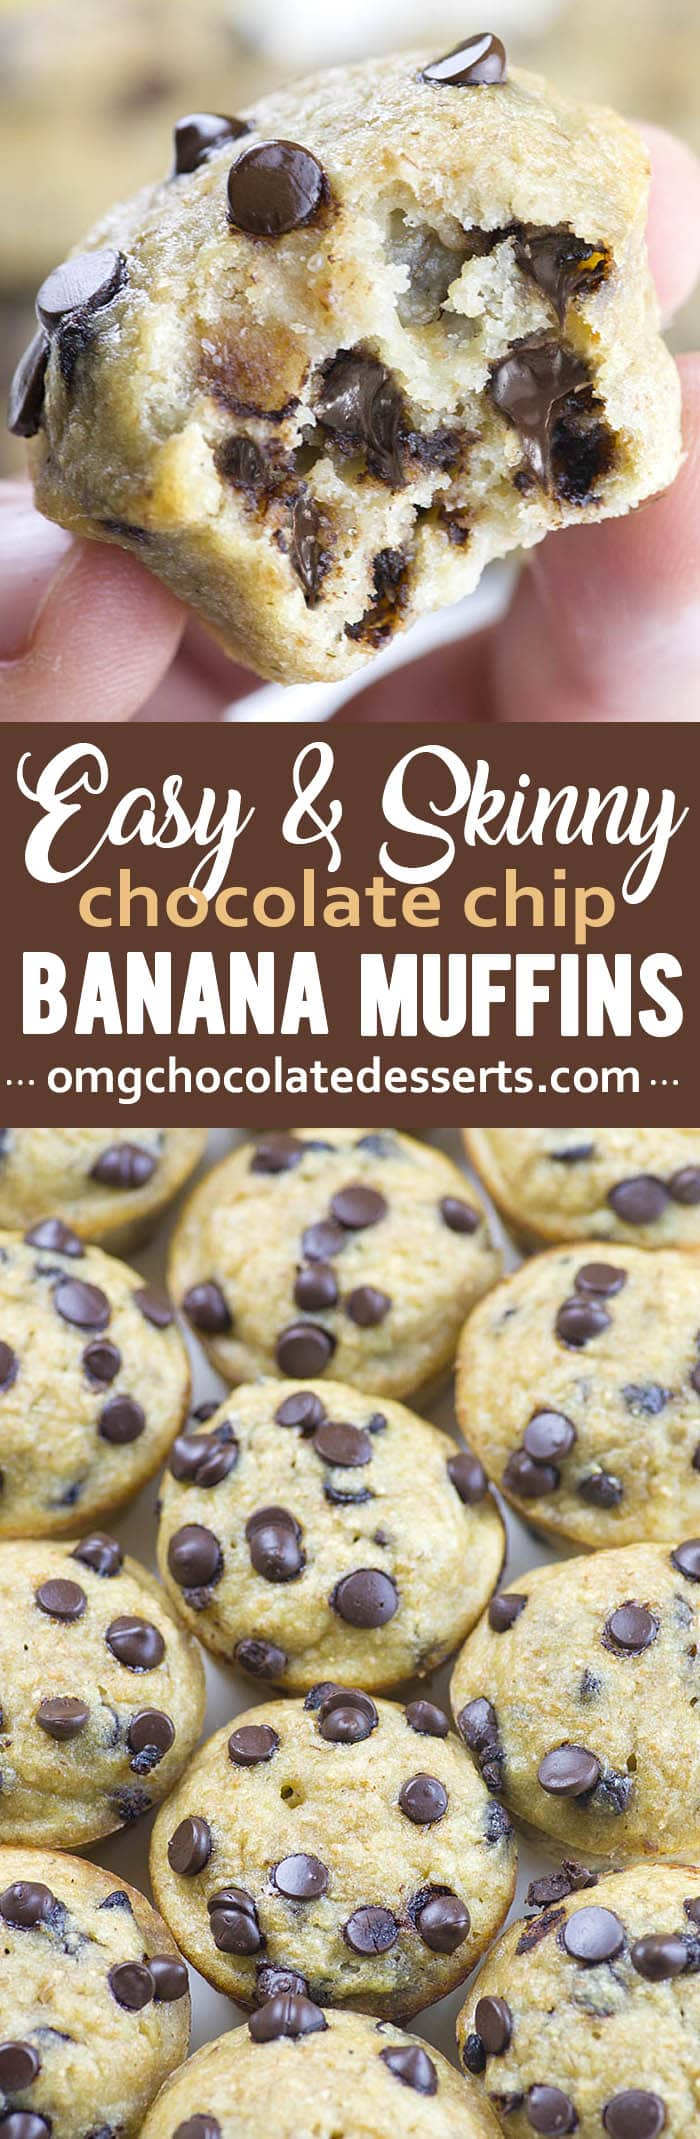 This super easy Banana Chocolate Chip Muffins Recipe is mixed up in just one bowl and ready in about 30 minutes, perfect for healthy breakfast.